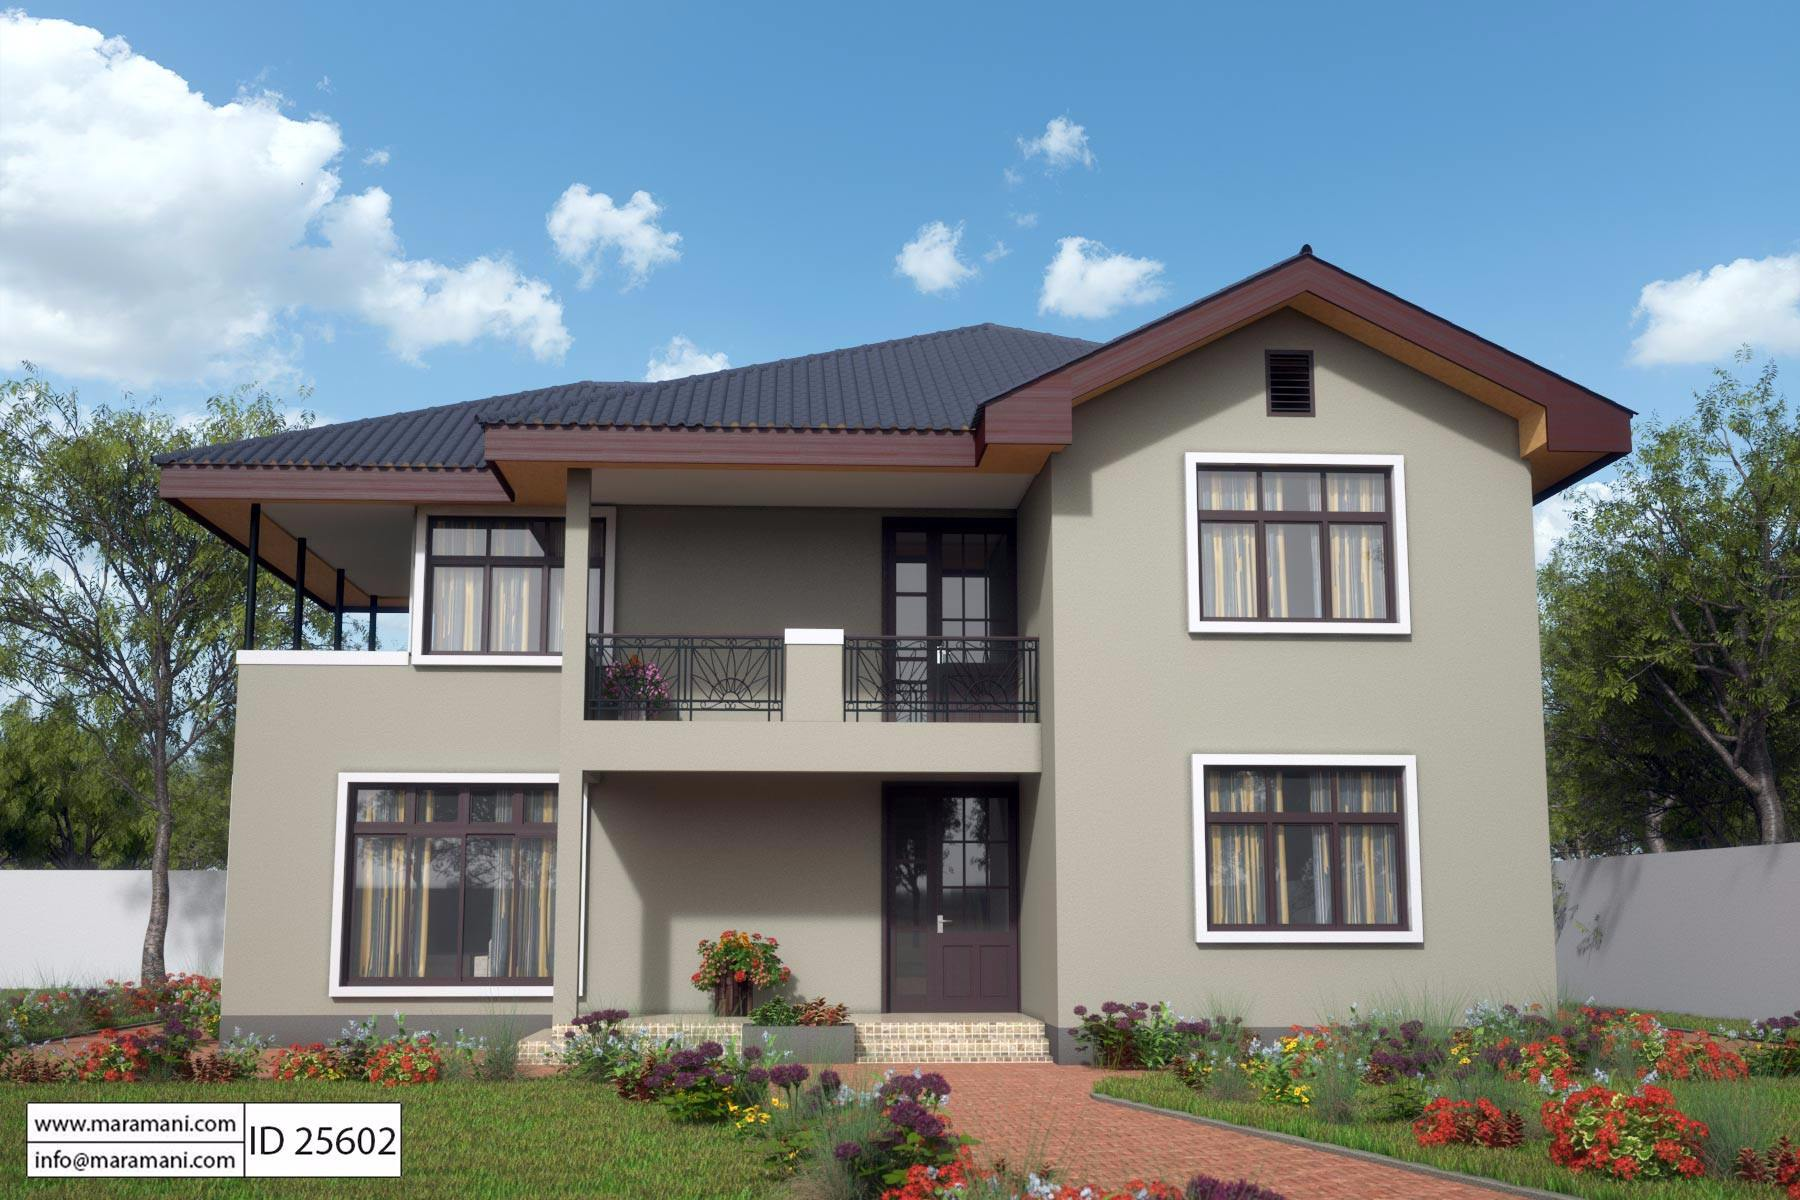 5 bedroom house design id 25602 house plans by maramani for 5 bedroom house